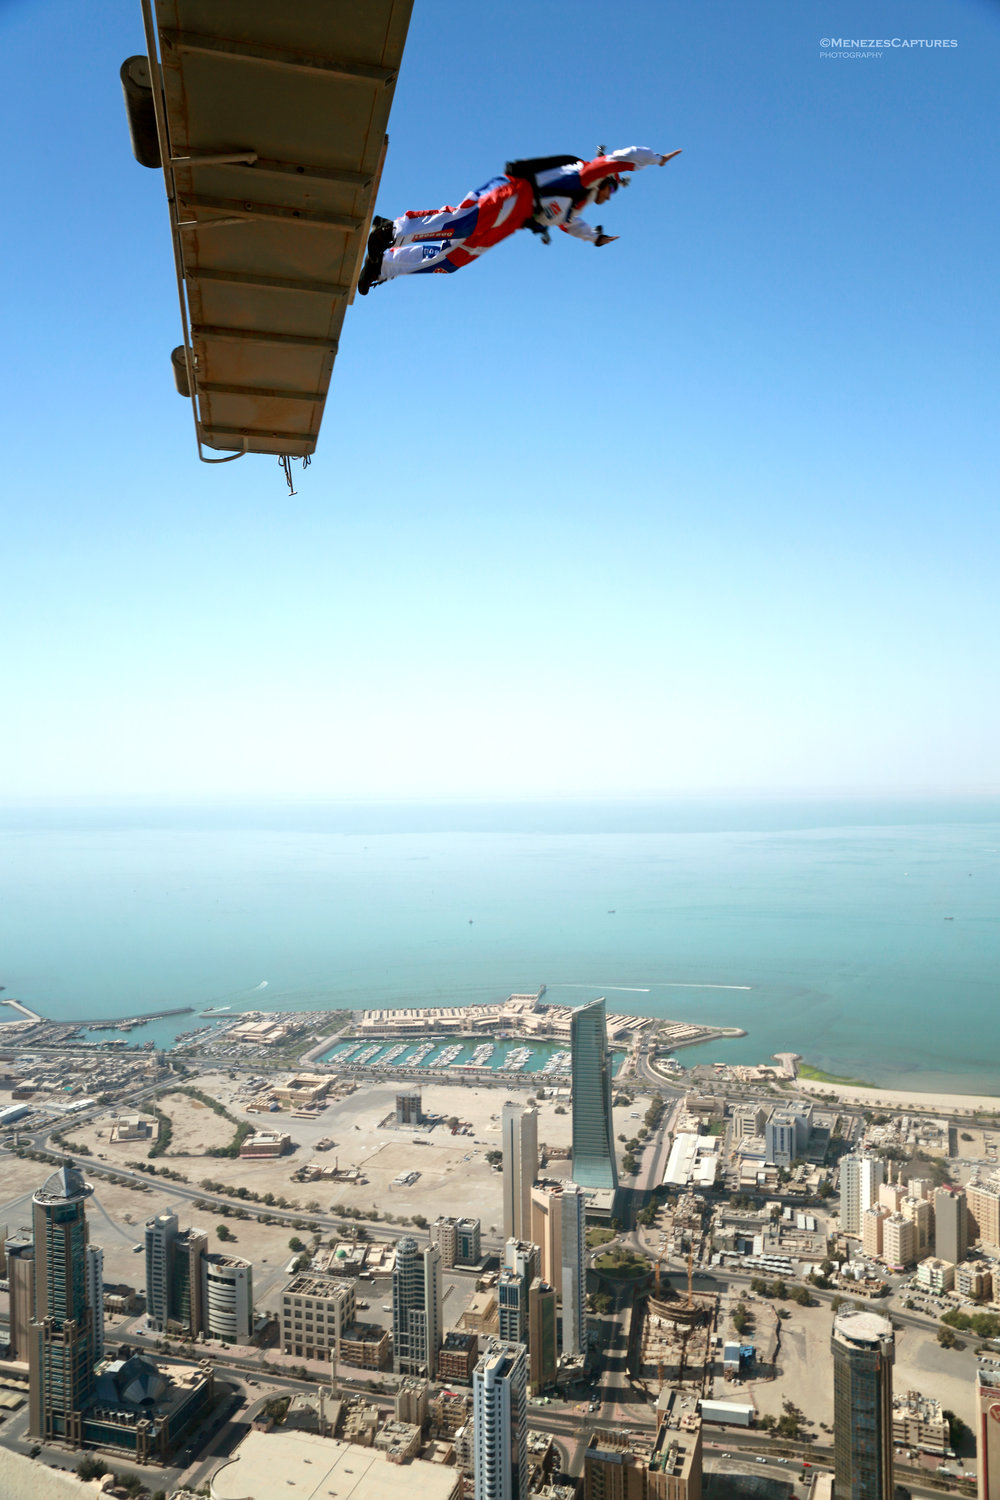 Renowned basejumper Chris Mc Dougall leaps off the Hamra Tower in Kuwait City (2013)